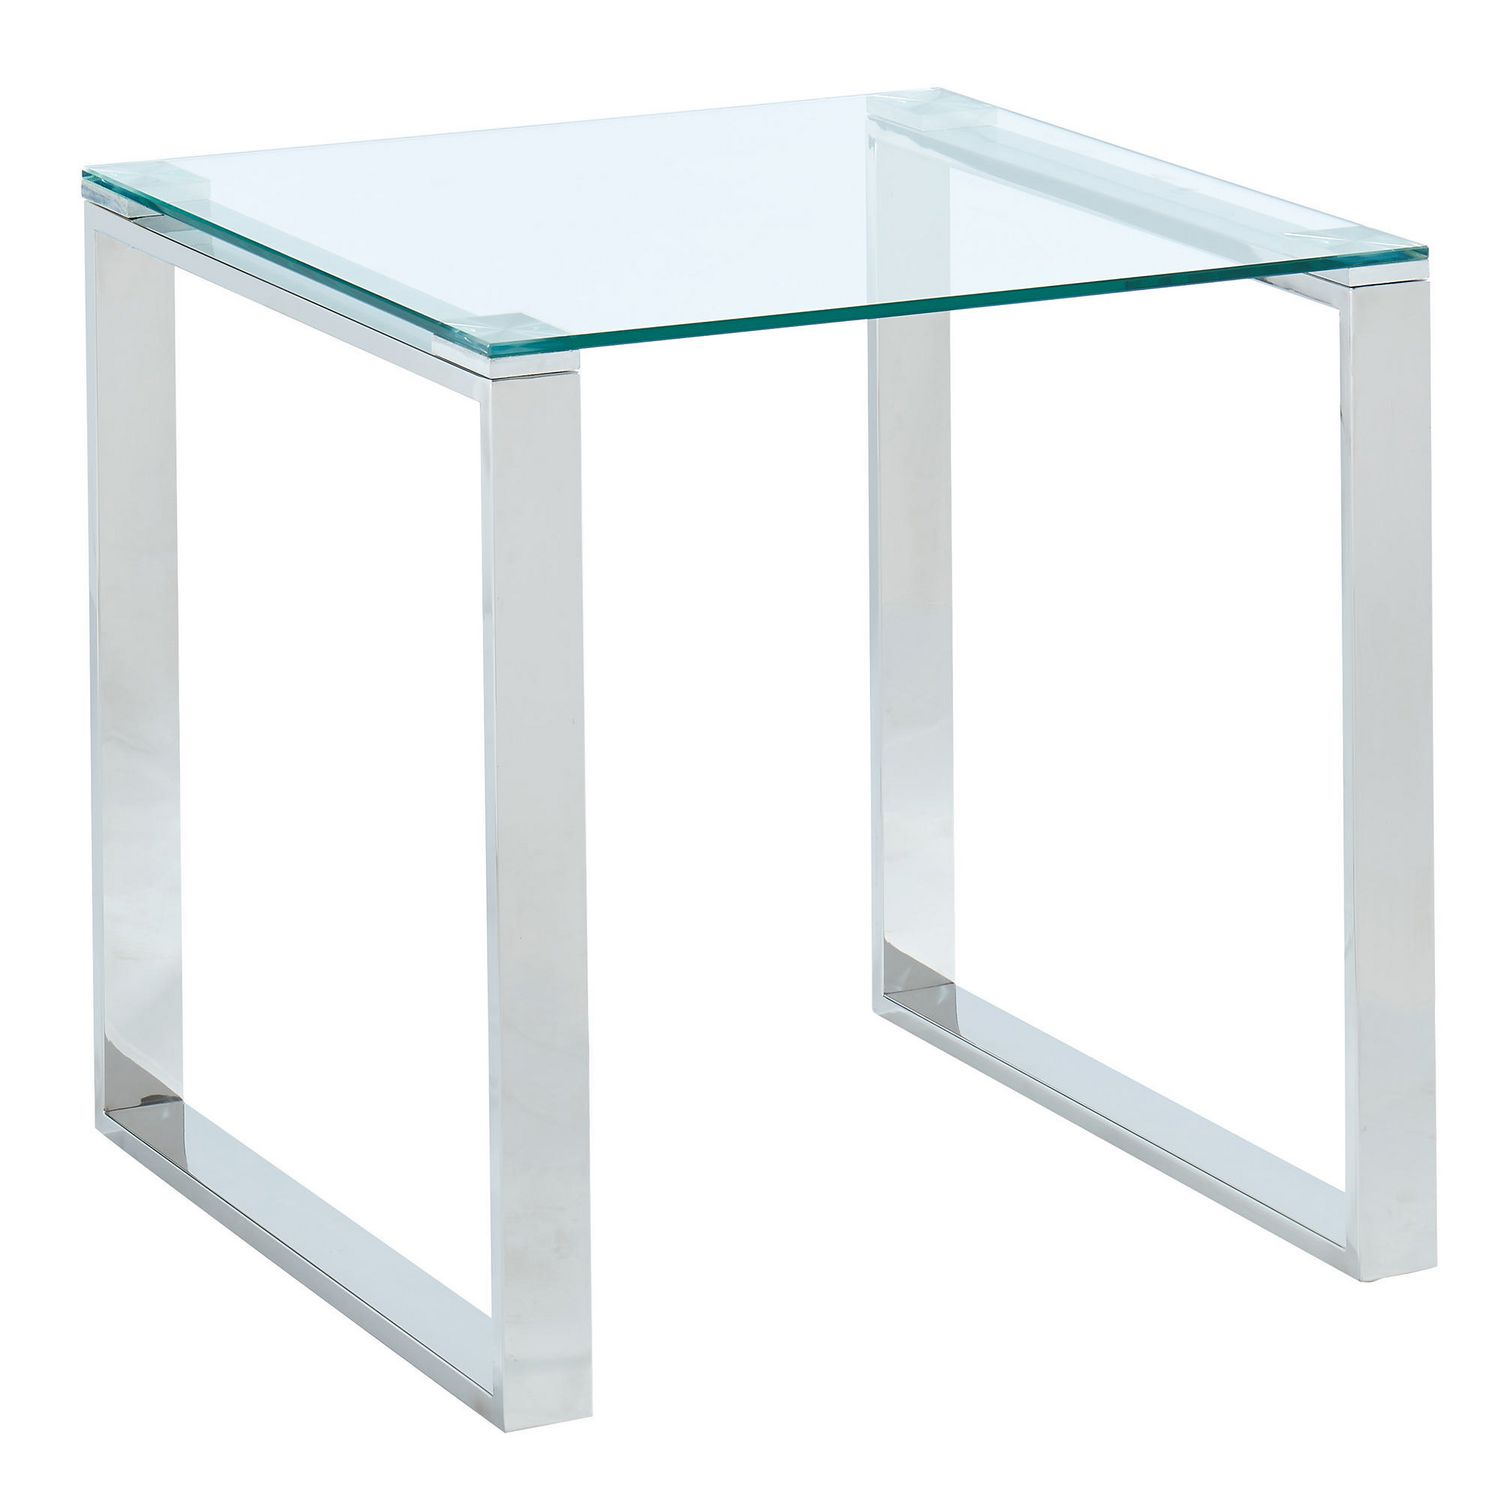 Table Appoint Verre Table D Appoint En Verre Chrome